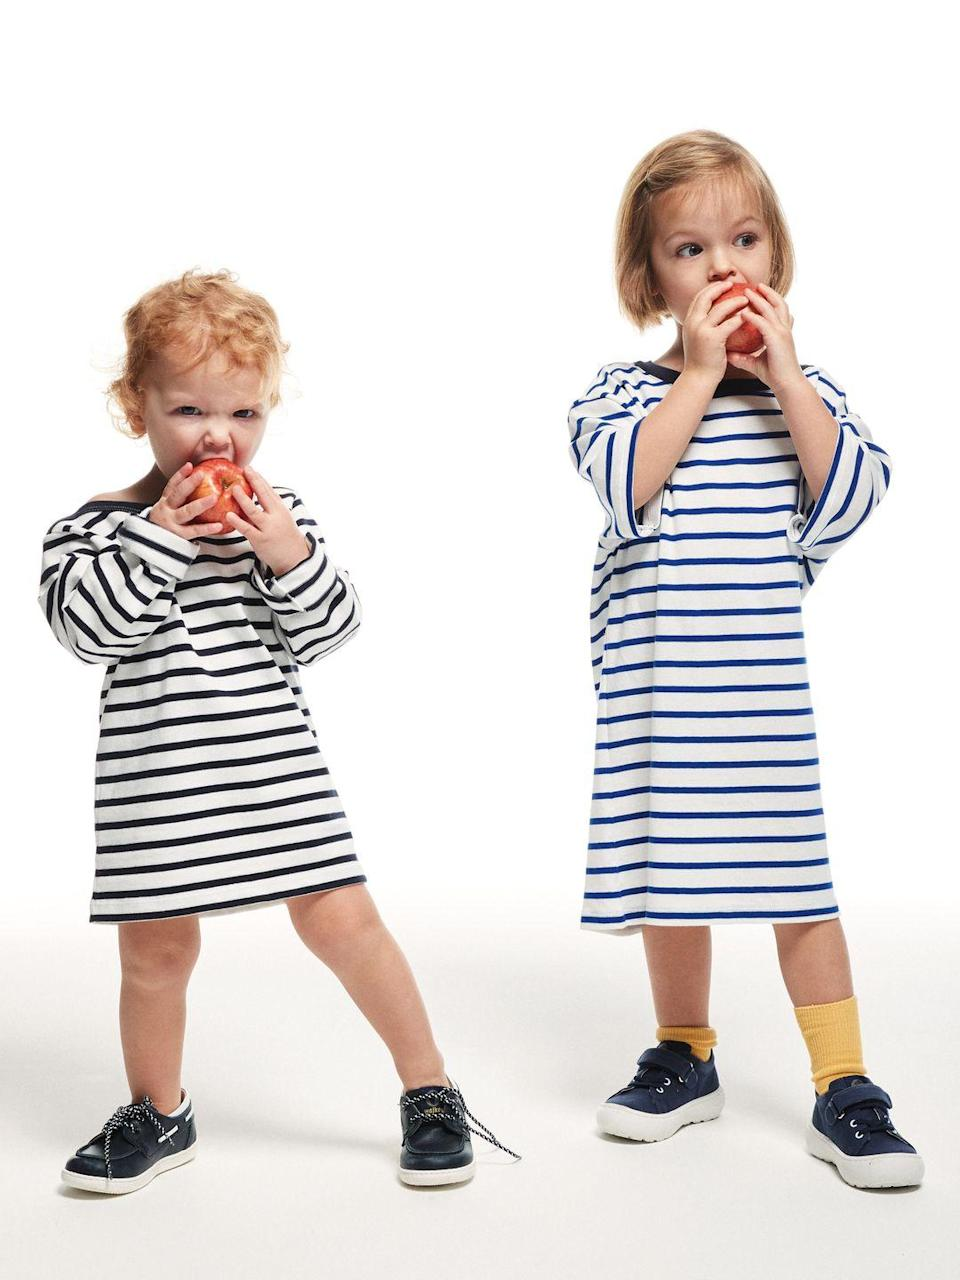 <p>Per Sophie. Marinière di jersey a maniche lunghe, <strong>Petit Bateau</strong> (29,90 euro ), stringate <strong>Walkey</strong> (75 euro). Per Alice. T-shirt a maniche corte, <strong>Petit Bateau</strong> (21,90 euro), calze <strong>Zara Kids</strong> (5,95 euro), sneakers <strong>Walkey</strong> (59,50 euro).</p>